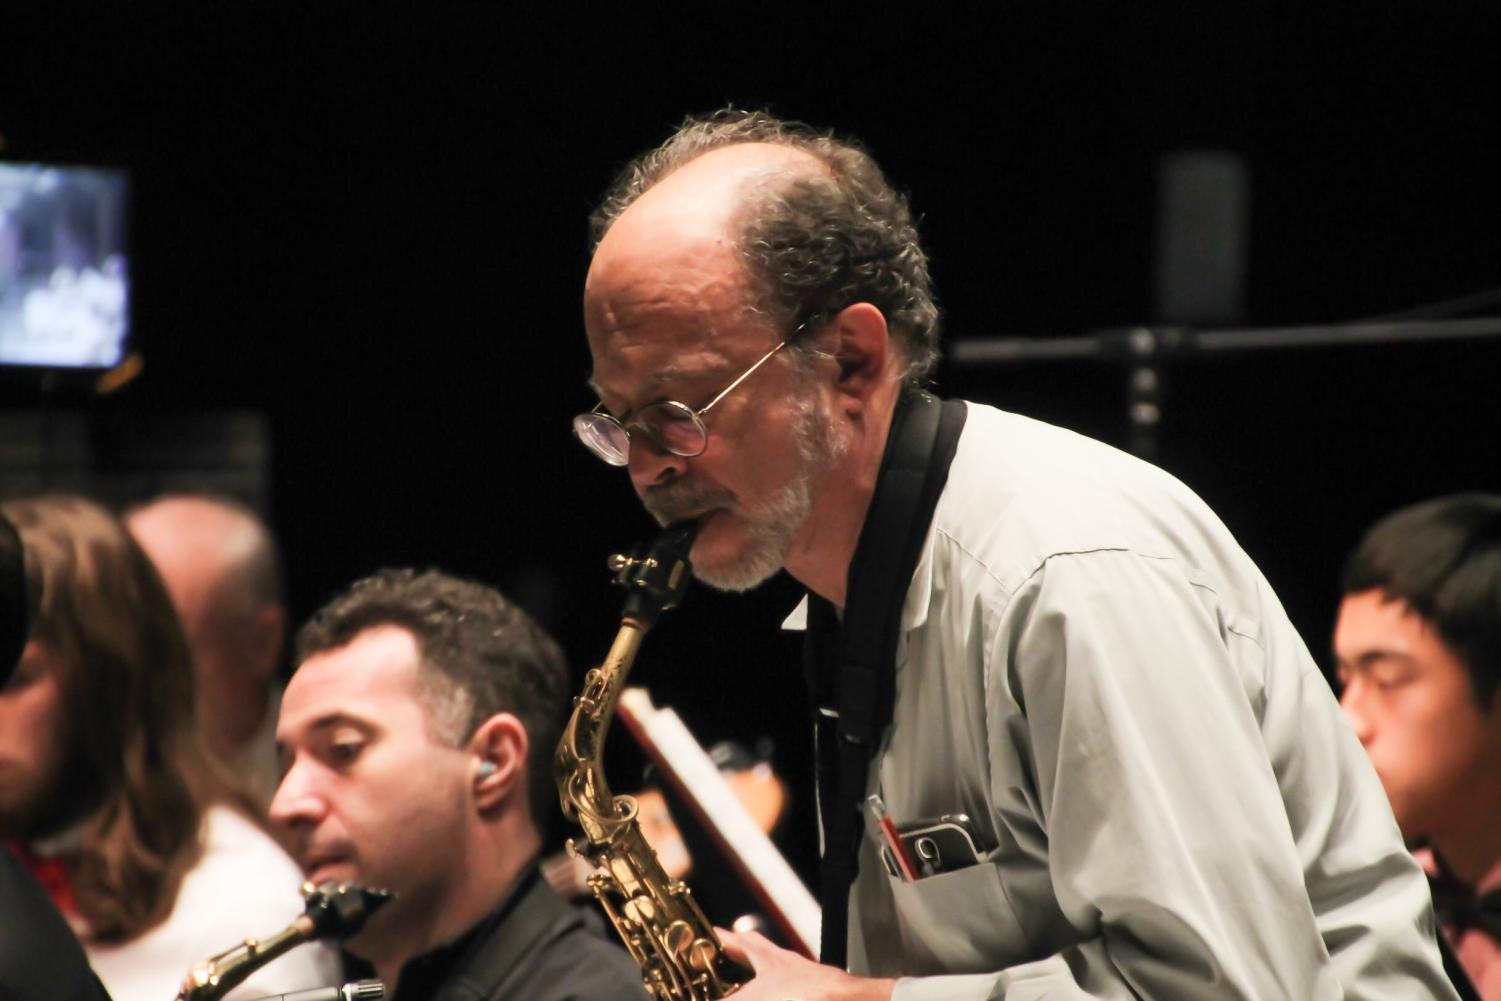 Soloists+from+the+De+Anza+College+Big+Band+saxophone+section+exchanged+thunderous+and+energetic+solos+back+and+forth+at+the+VPAC+center+on+Dec.+3.